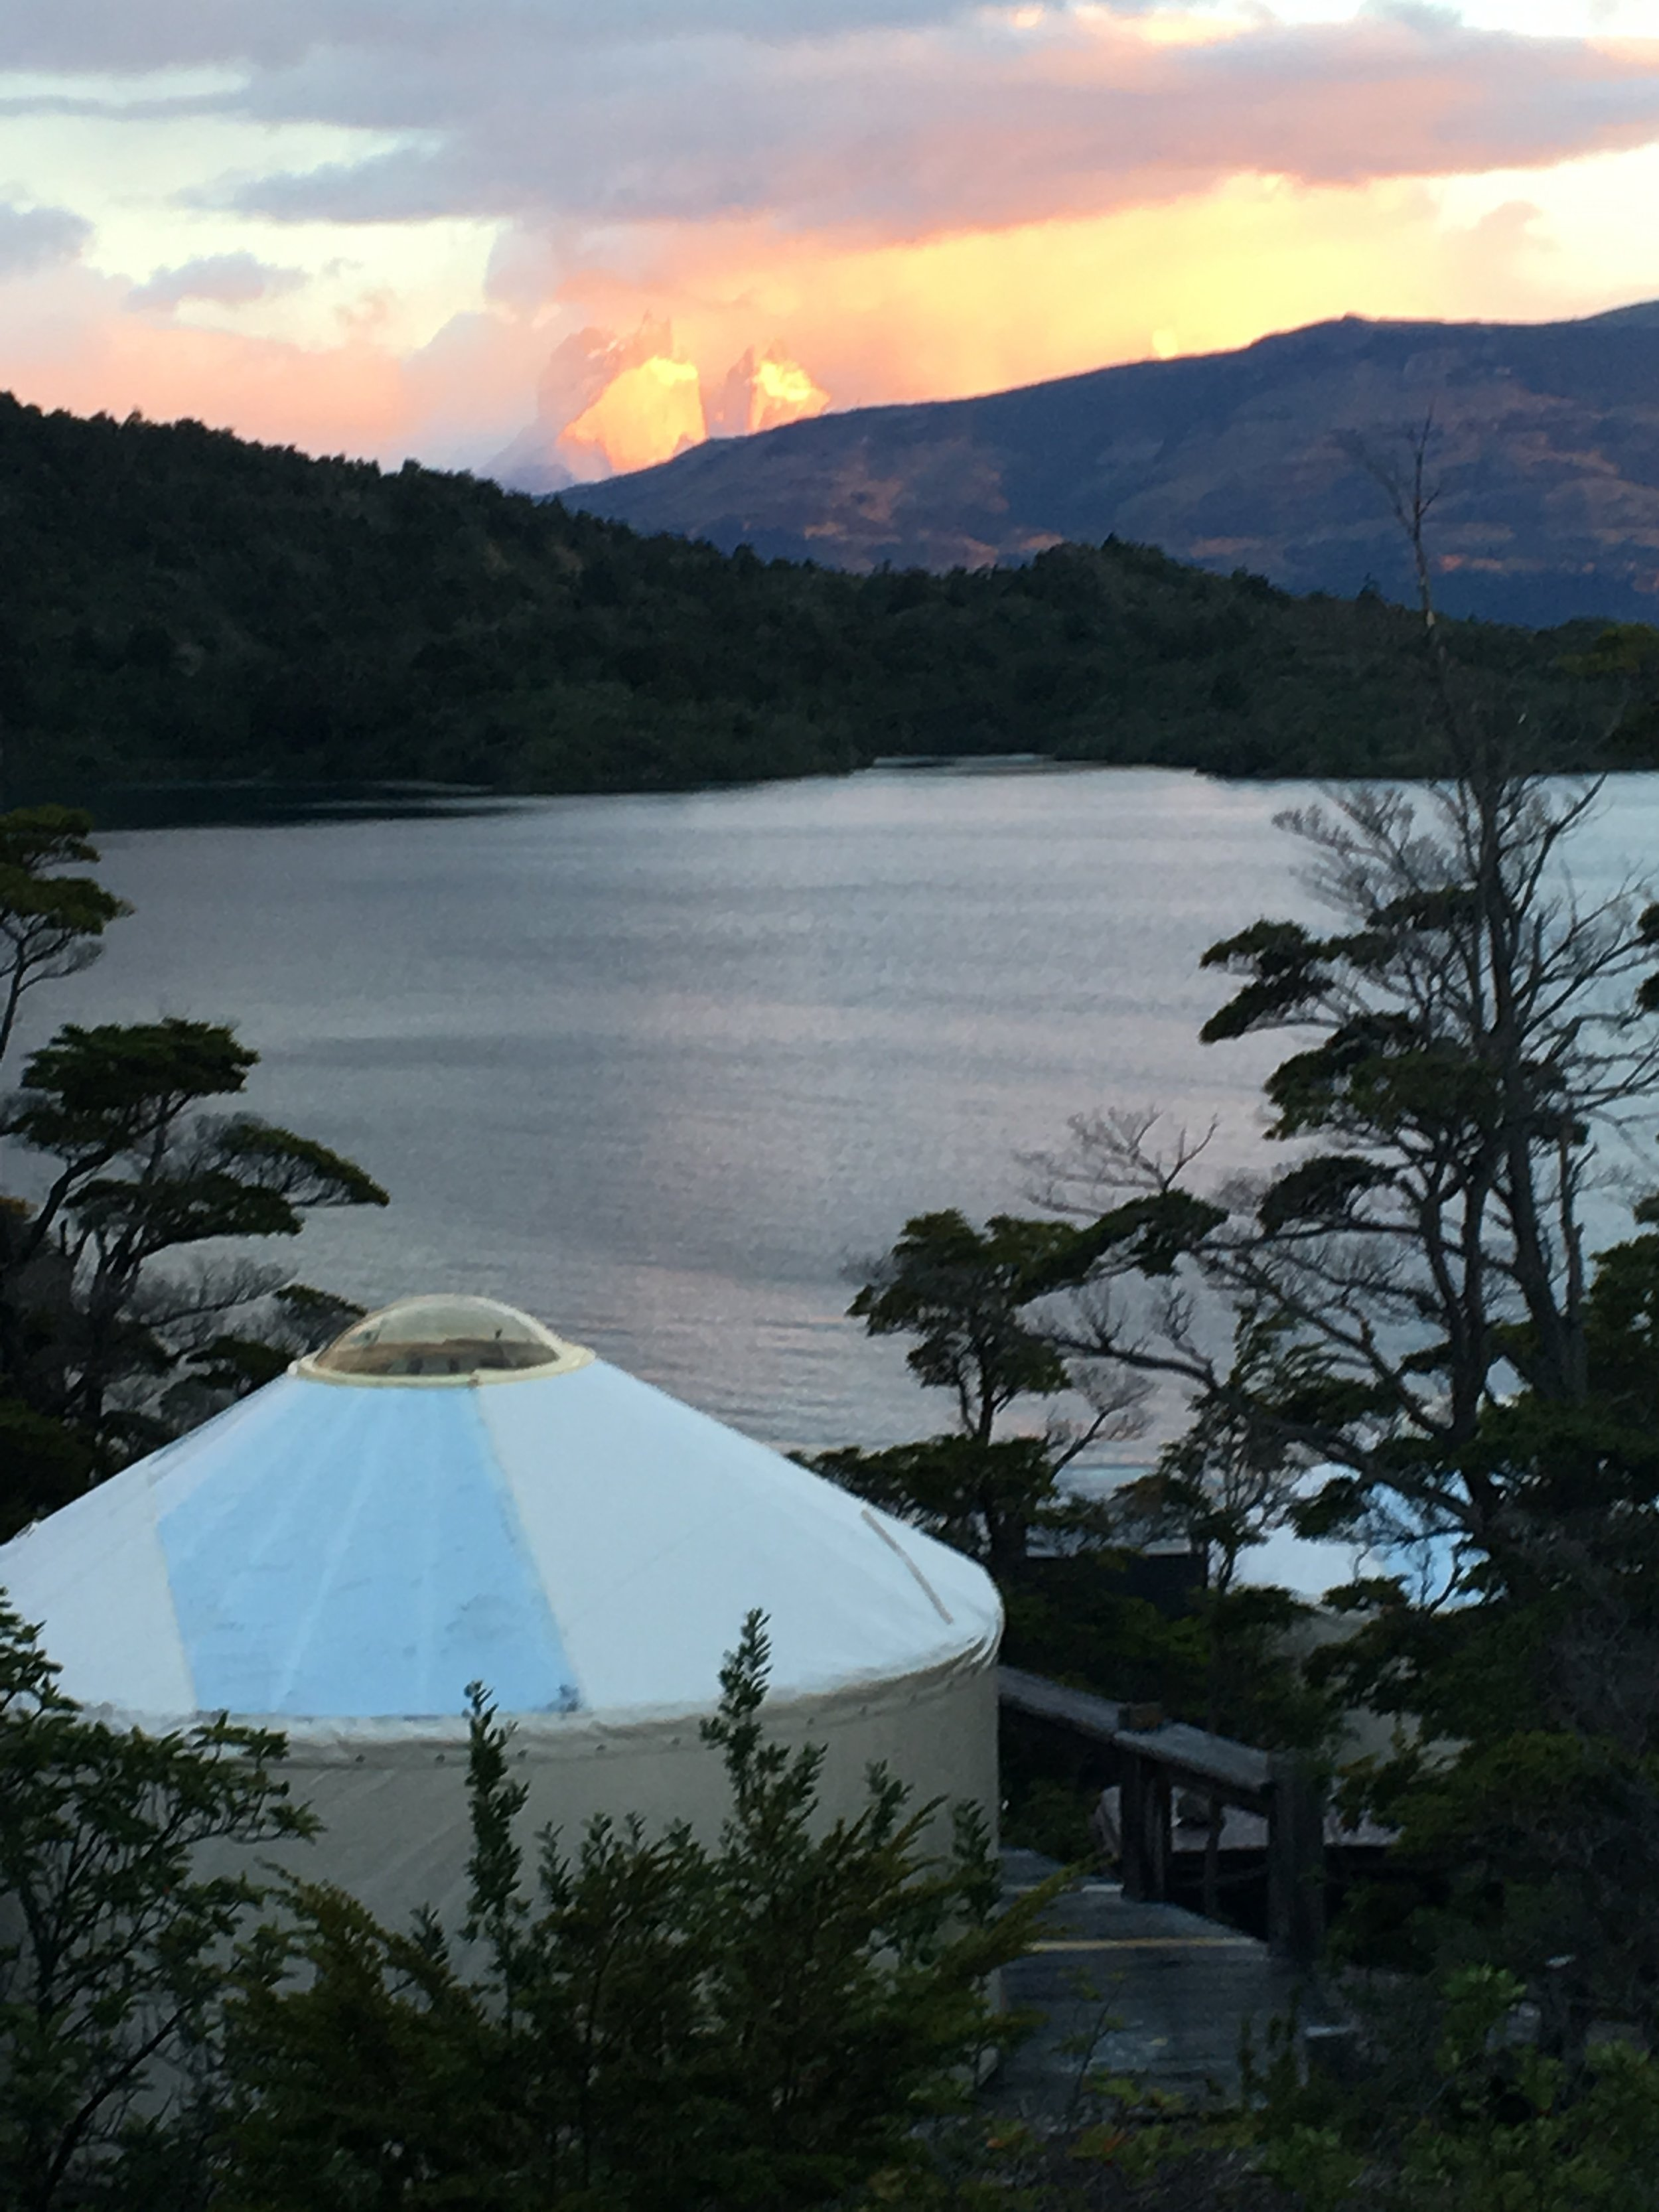 The Yurt sunsets were otherworldly.